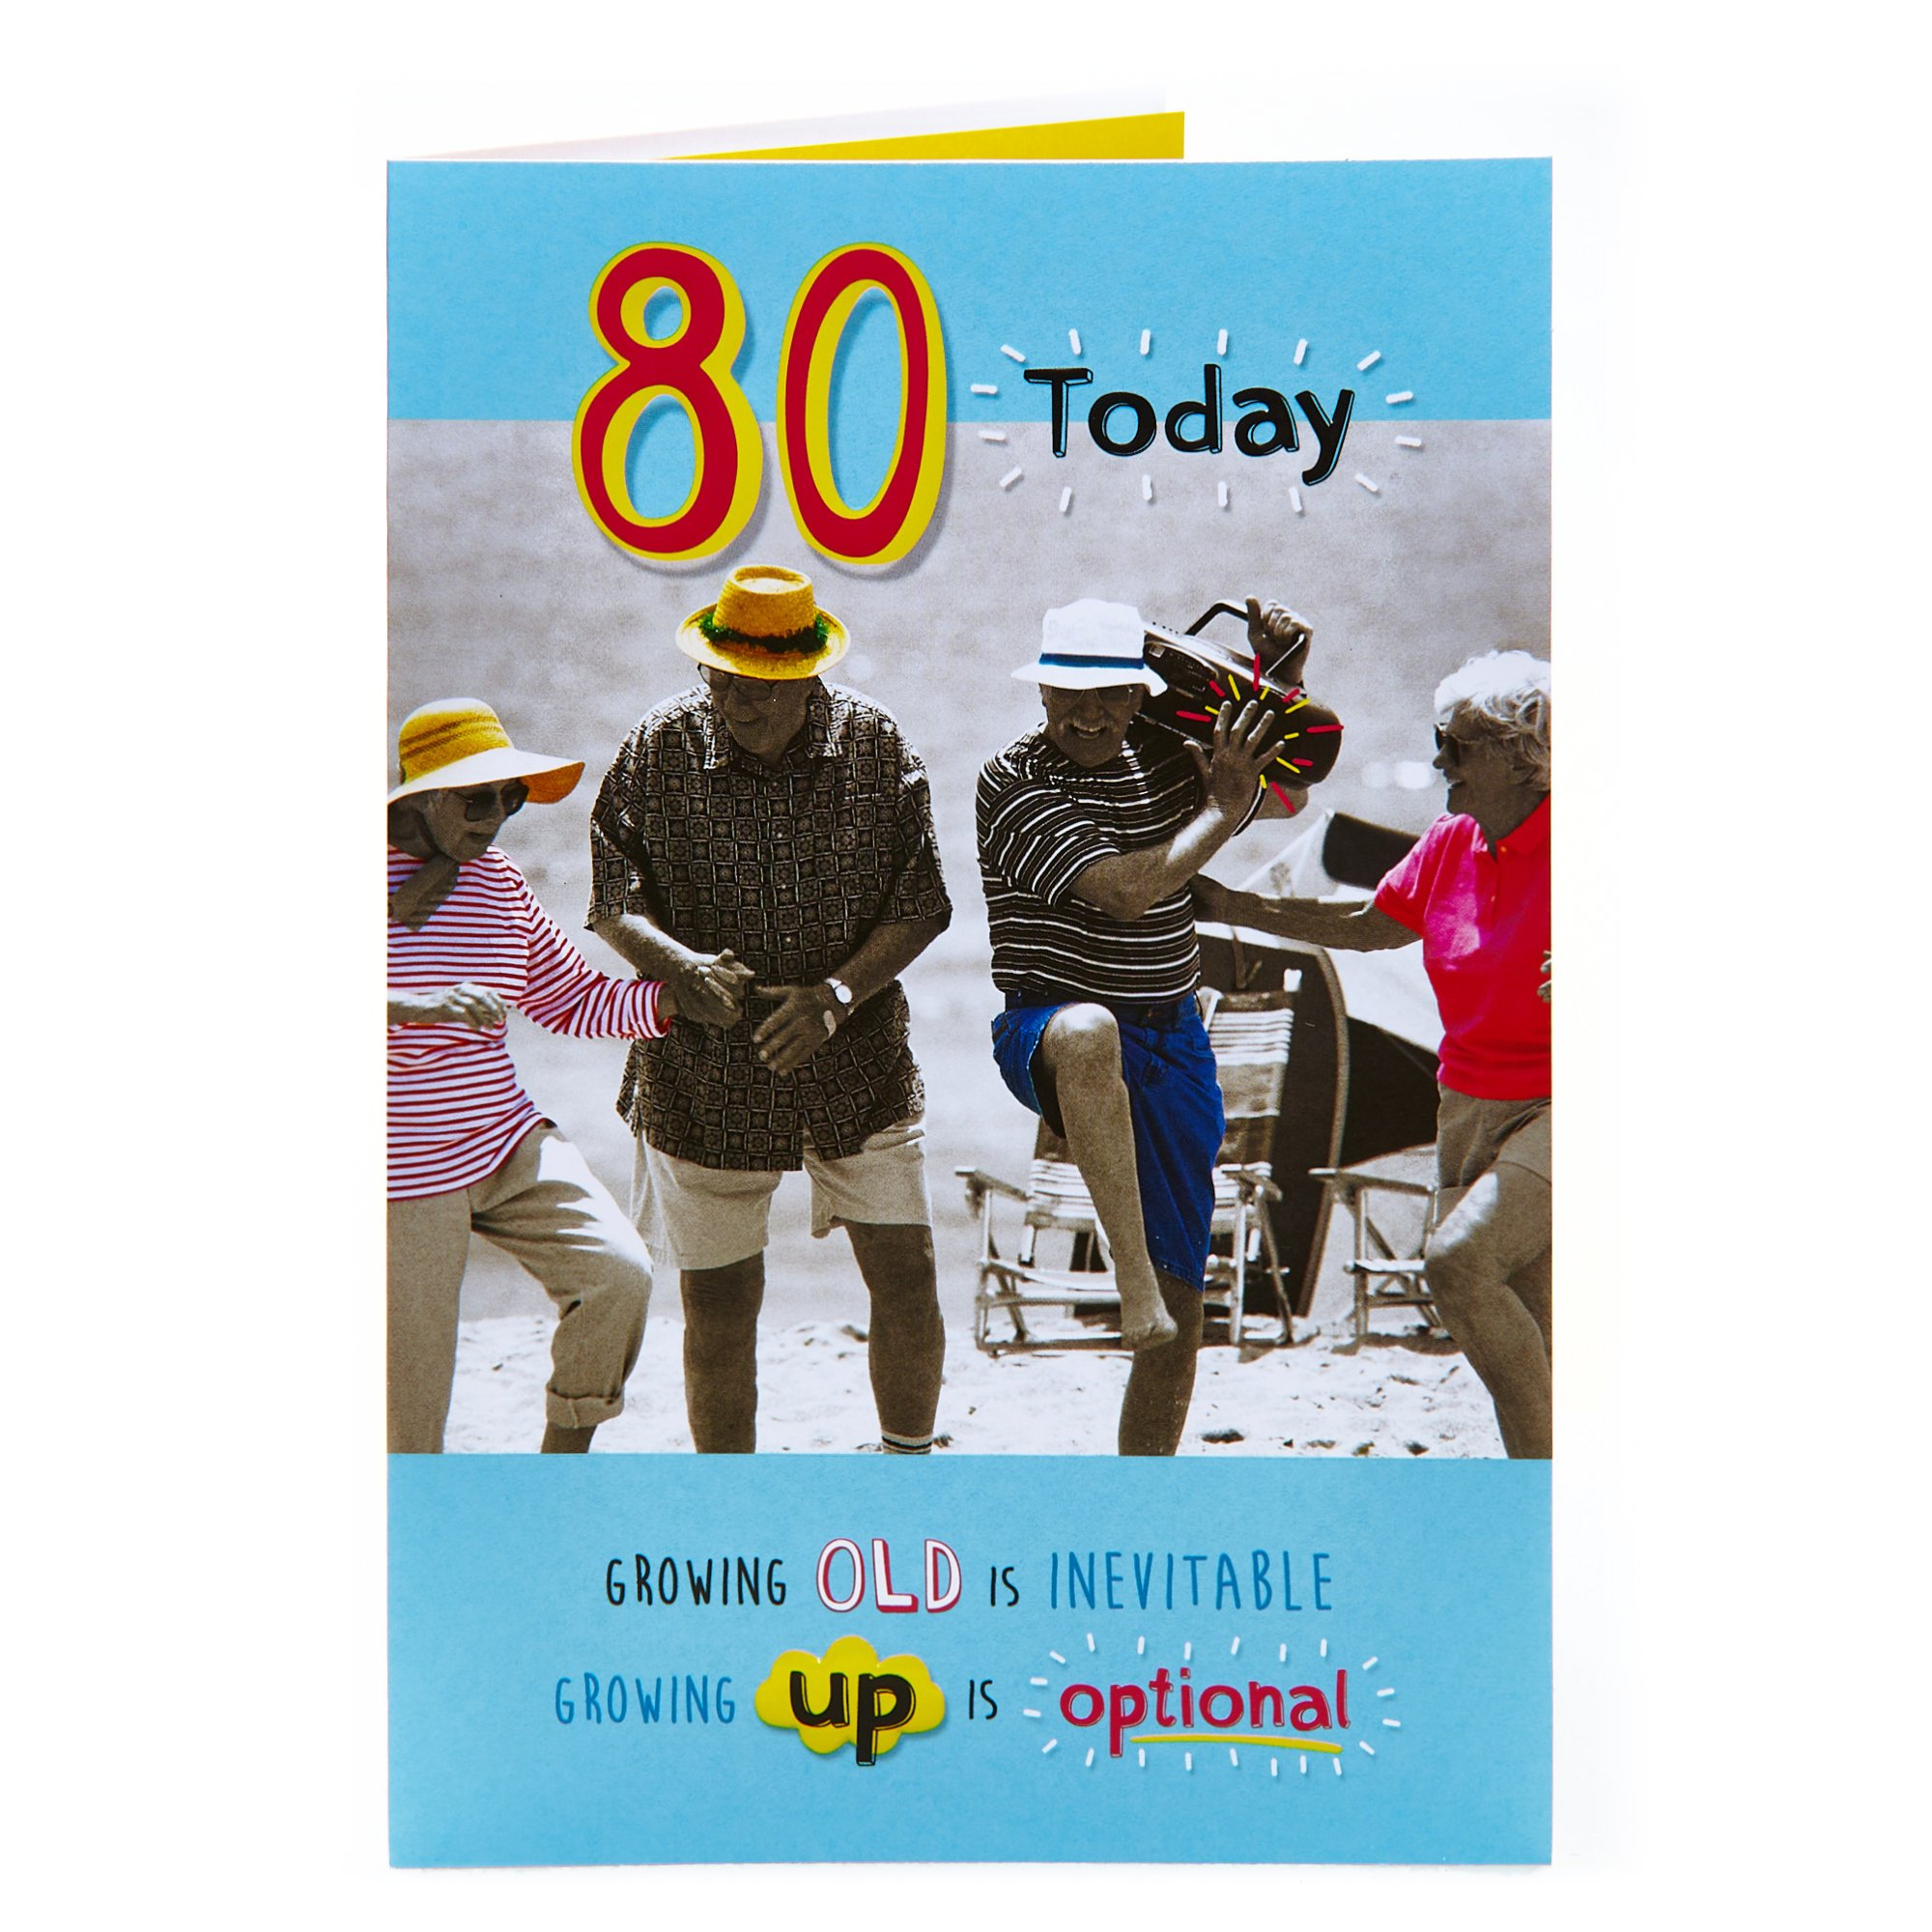 80th Birthday Card - Growing Old Is Inevitable